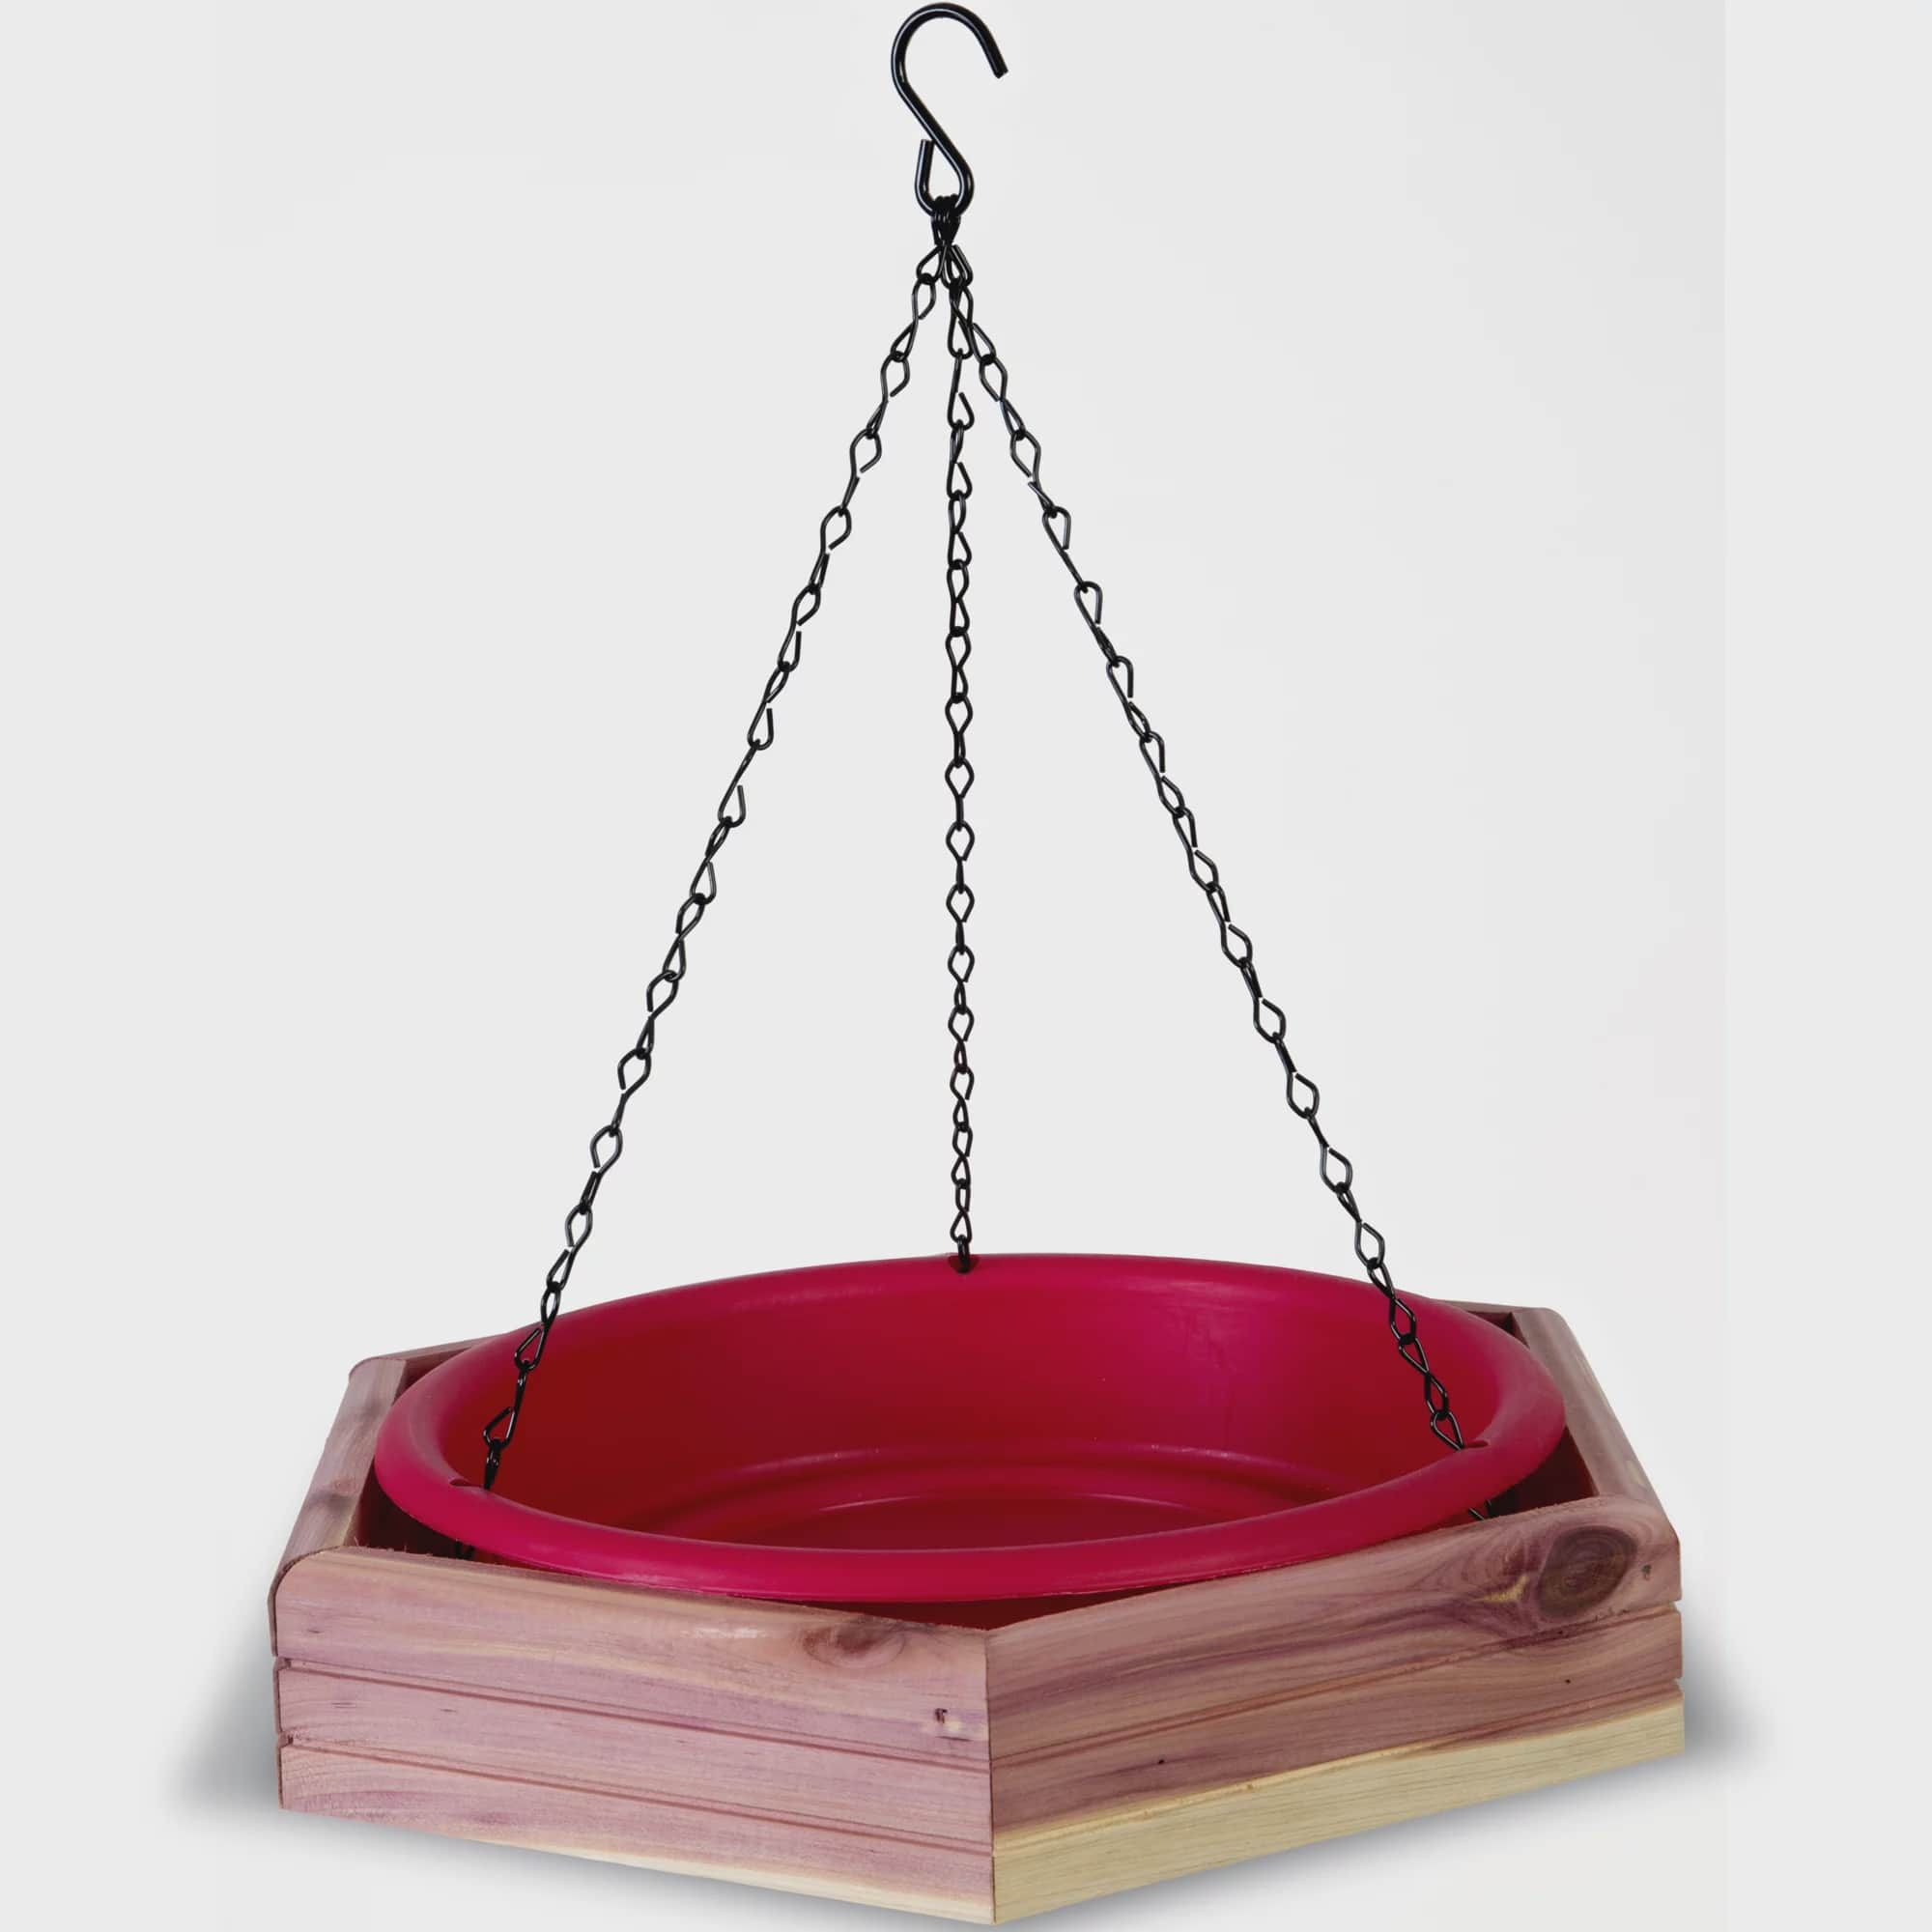 Pennington Seed Cedar 2-in-1 Wild Birdbath and Birdfeeder by Pennington Seed